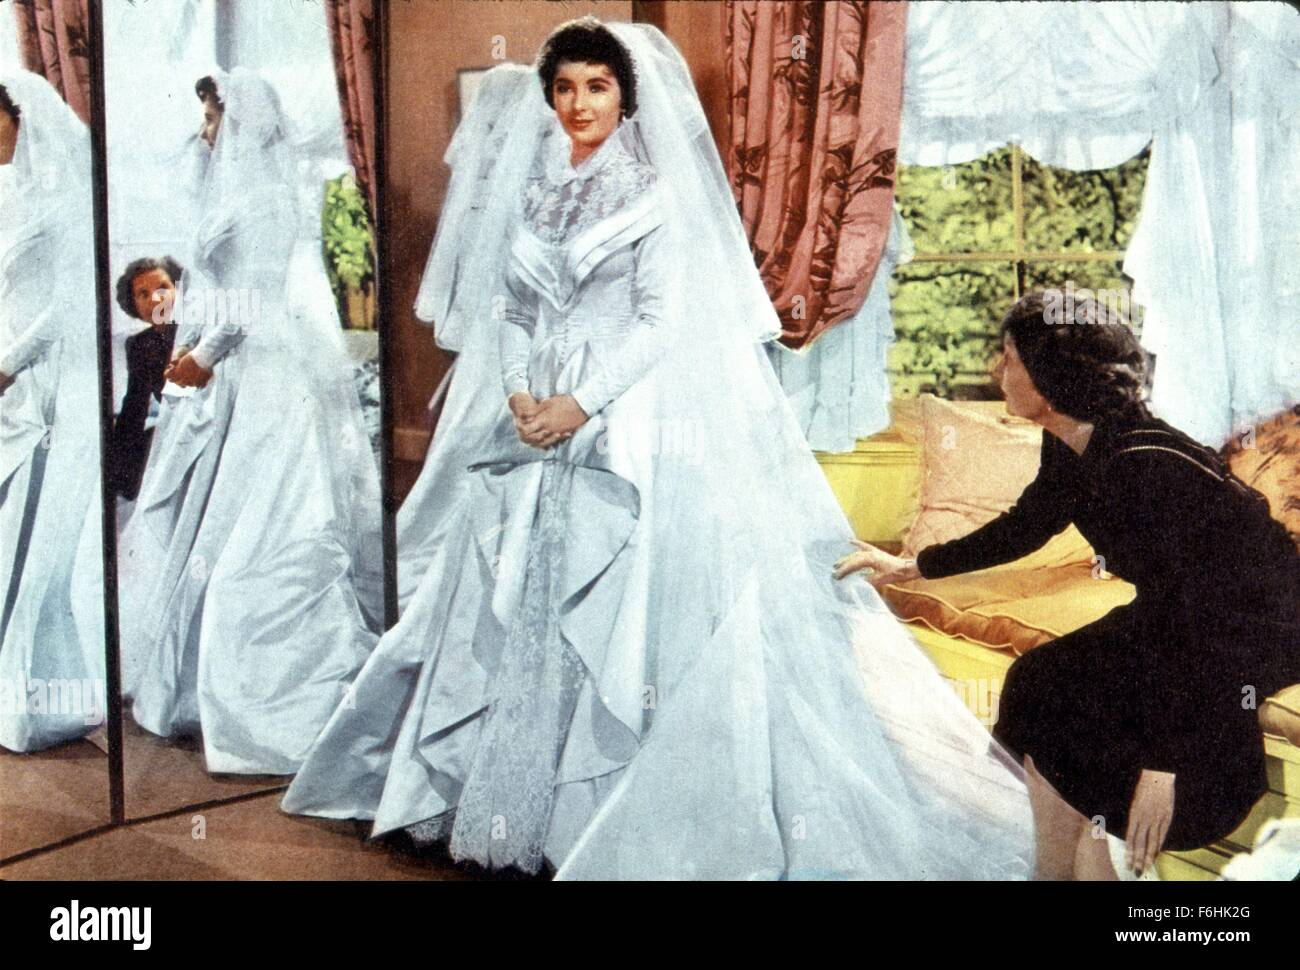 Elizabeth Taylor Wedding Stock Photos & Elizabeth Taylor Wedding ...